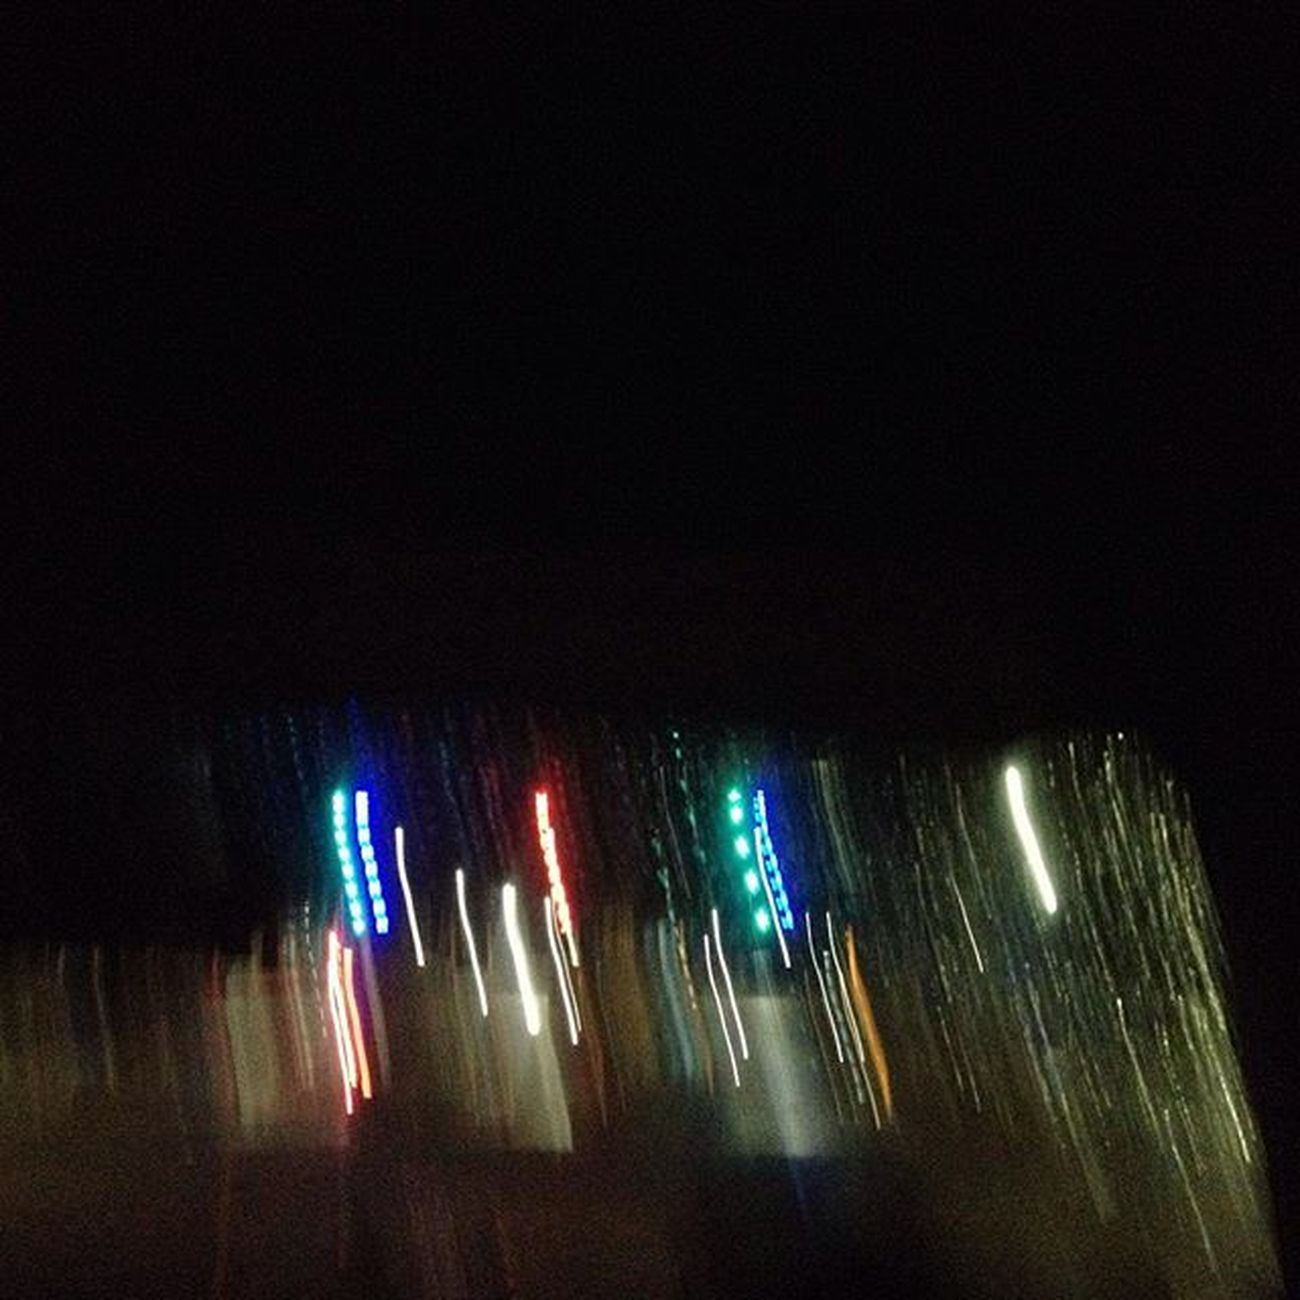 Its raining and the lights in front is the light from the toll gate in NLEX'! Took a picture because it looks like a christmas light! LightVandals PickMeRAHuaweiP8 CreateWithP8 HuaweiP8